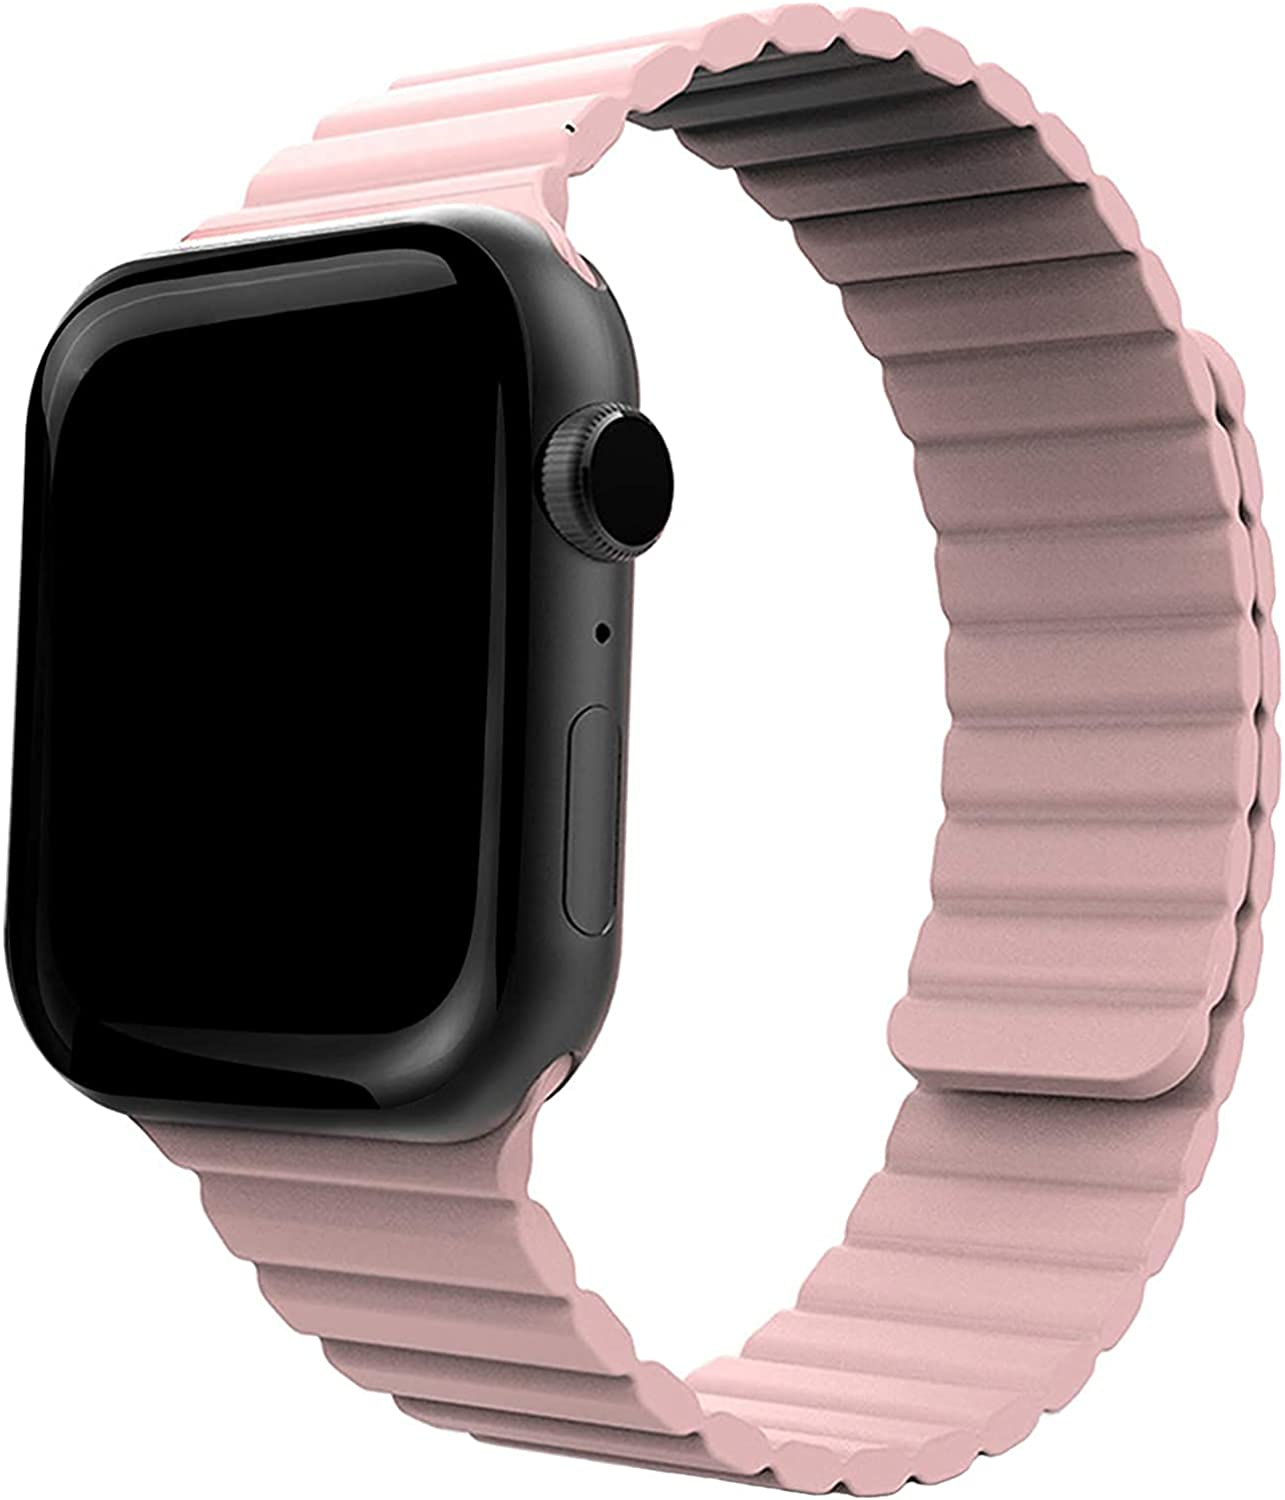 Compatible with Apple Watch Band 44mm 42mm 40mm 38mm - Enhanced Adjustable Silicone Strap with Magnetic Closure System for iWatch Series SE/6/5/4/3/2/1